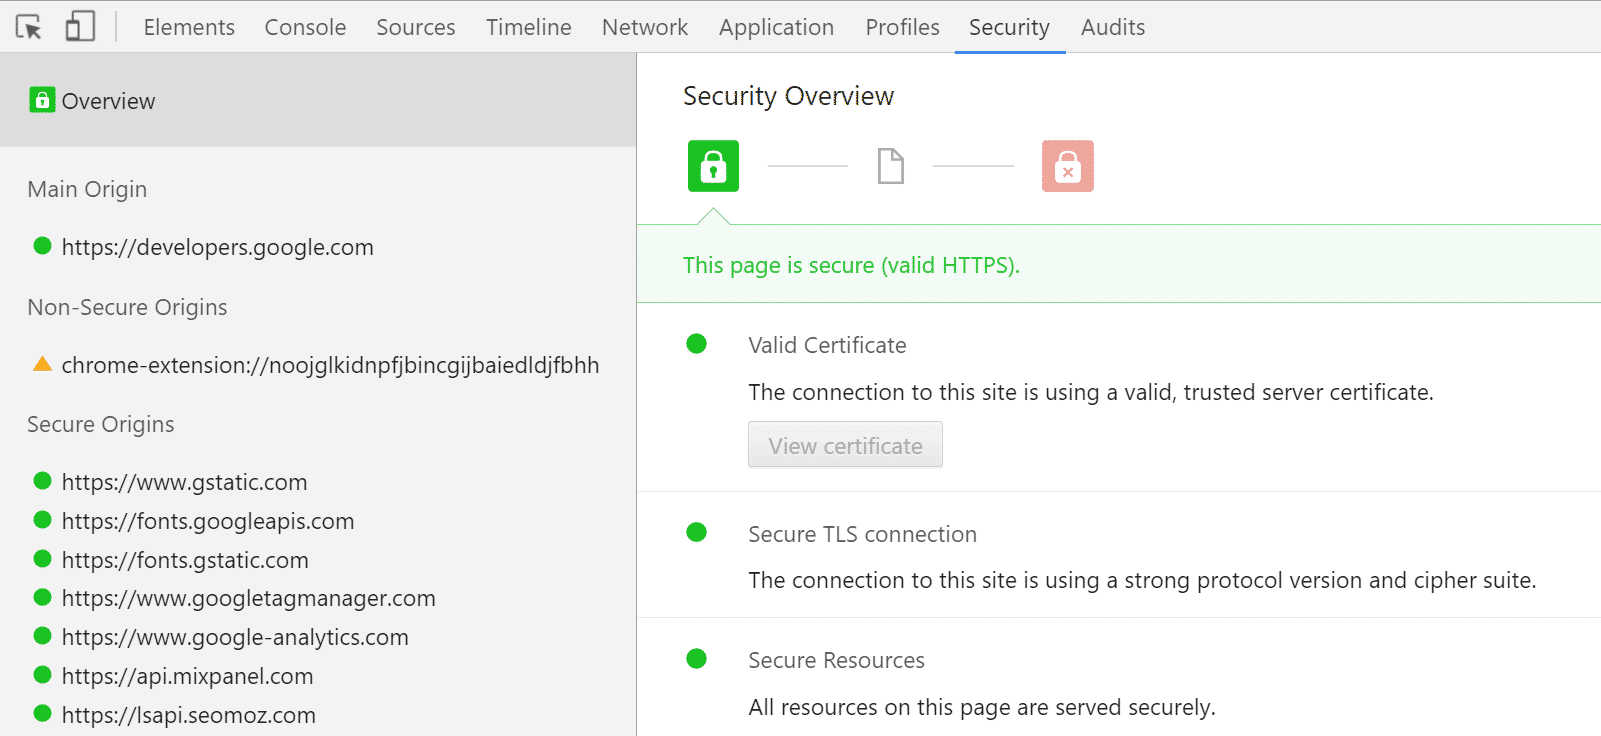 Verificar os HTTPs no Chrome Devtools